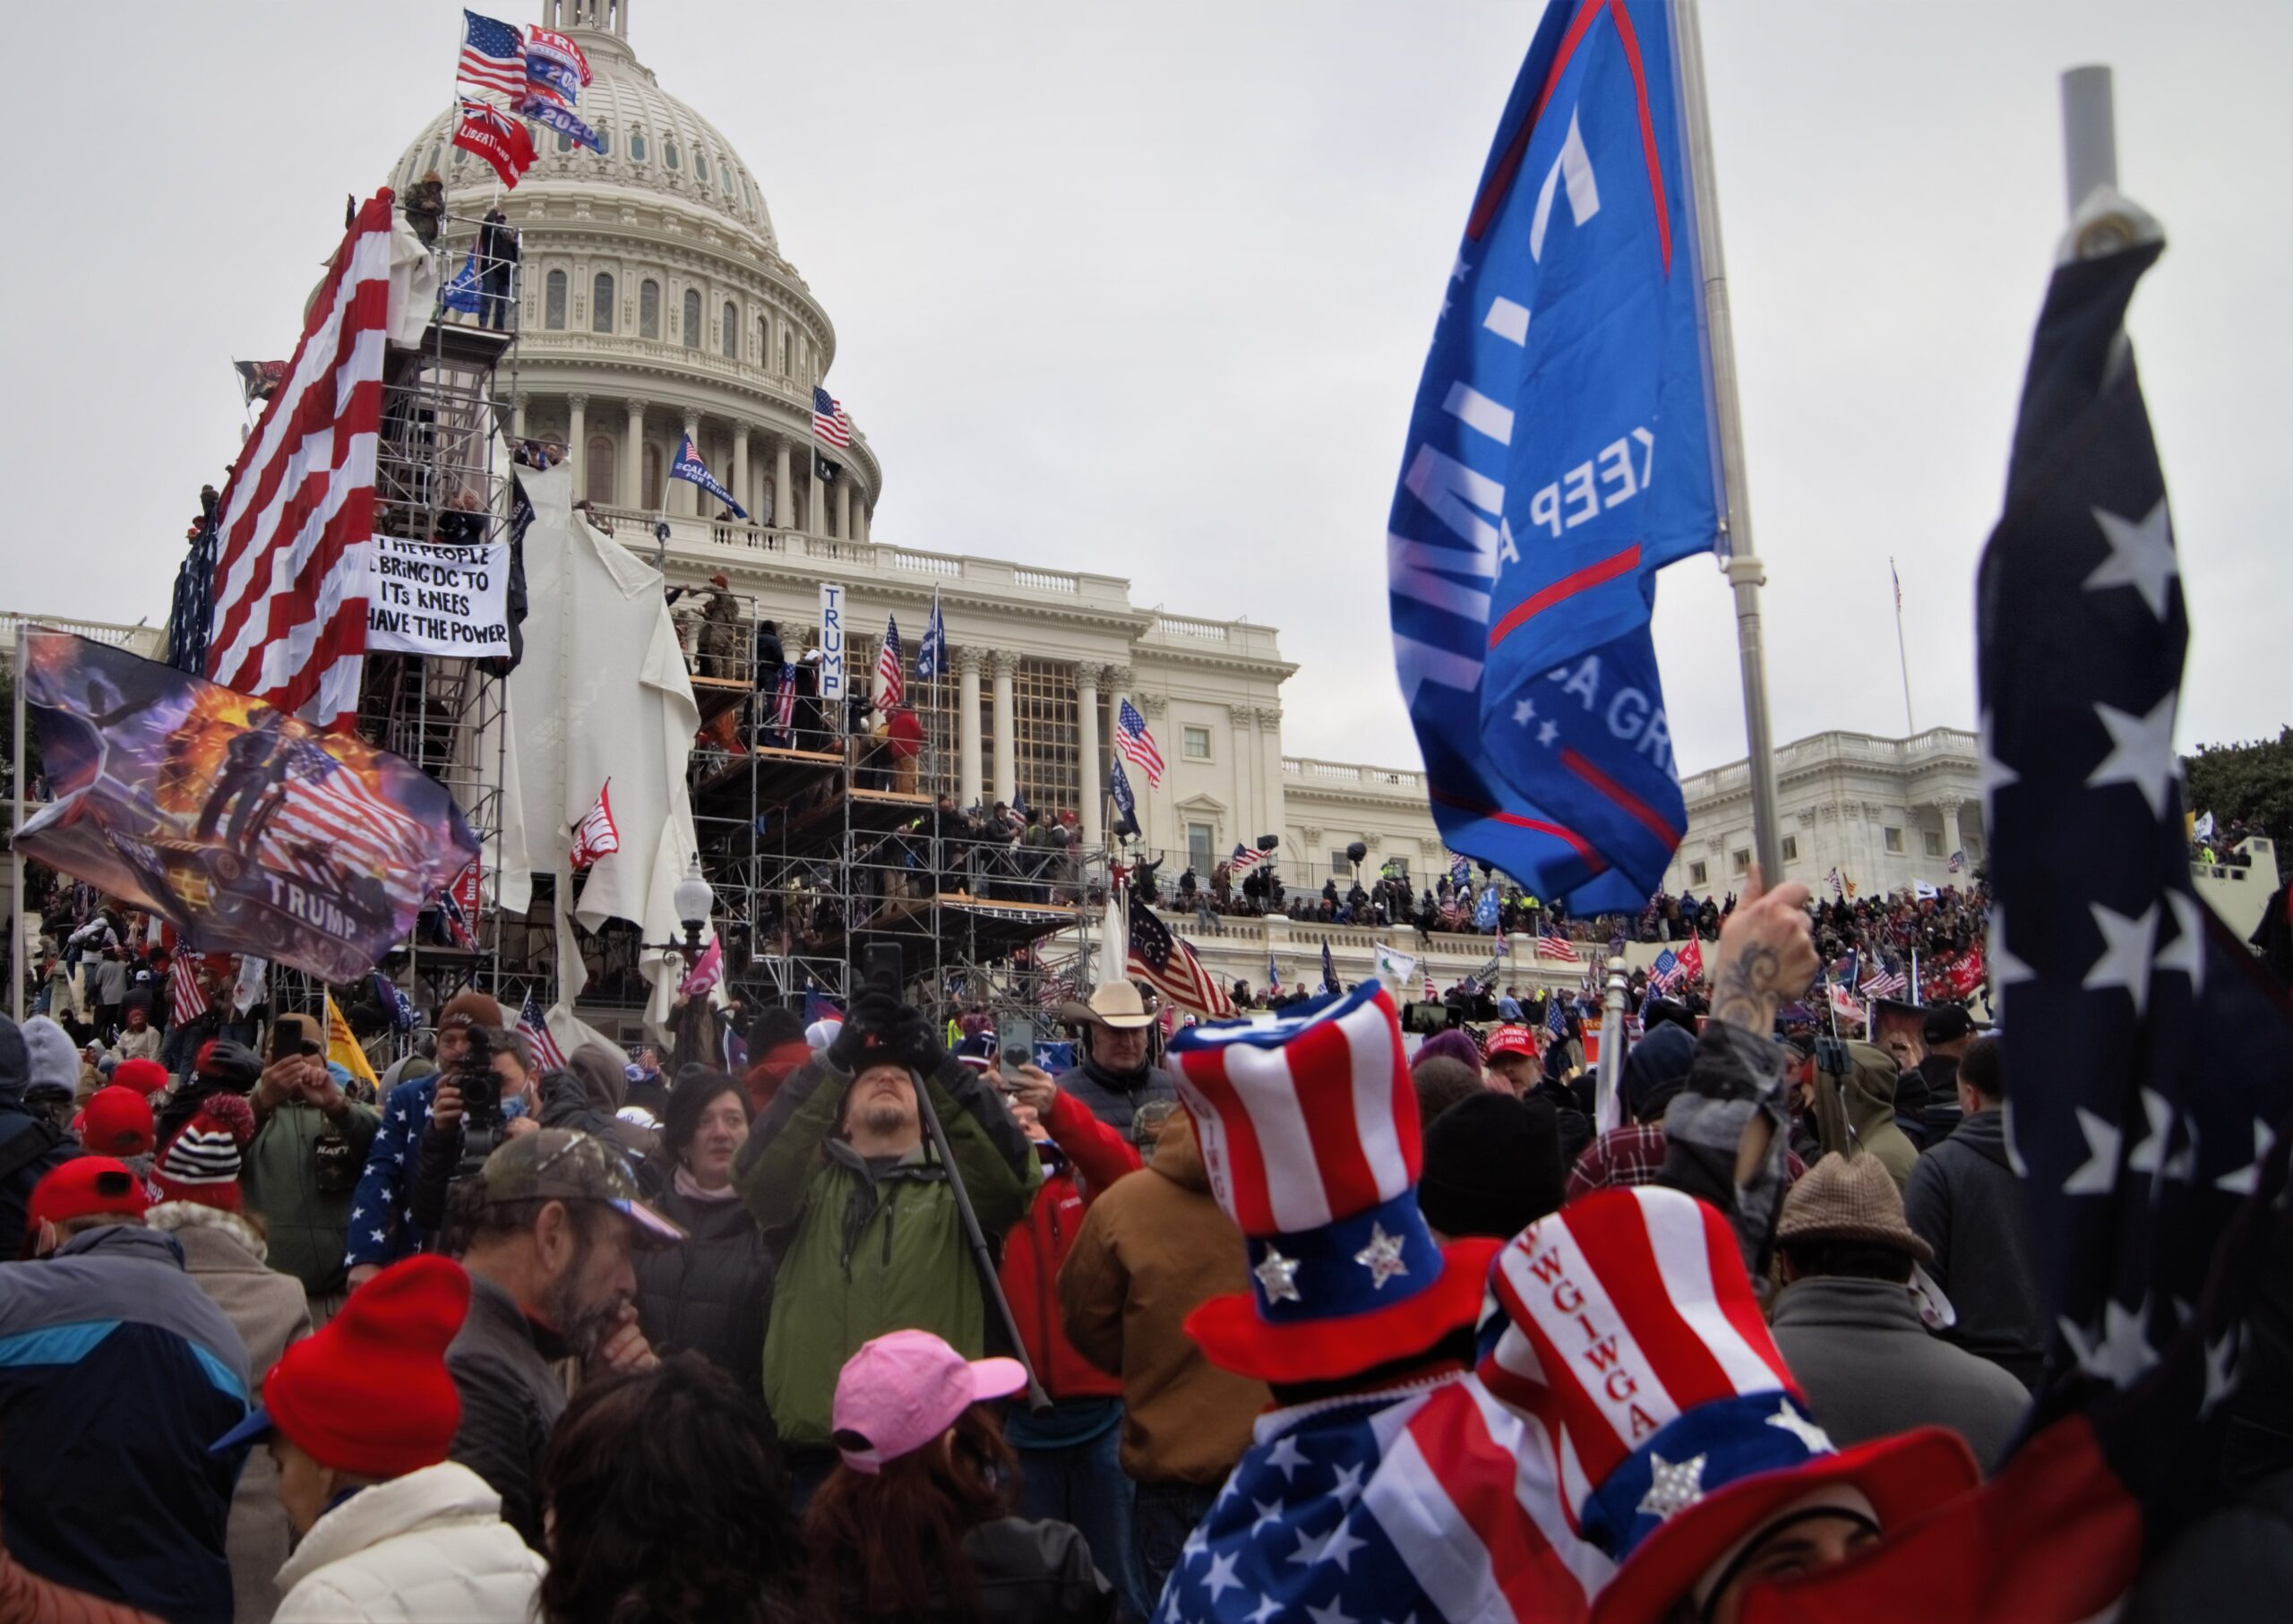 storming of the capitol, us capitol, 2021 capitol, us capitol 2021, january 6 2021, insurrection, trump us capitol, stop the steal, save america rally, us capitol attack,